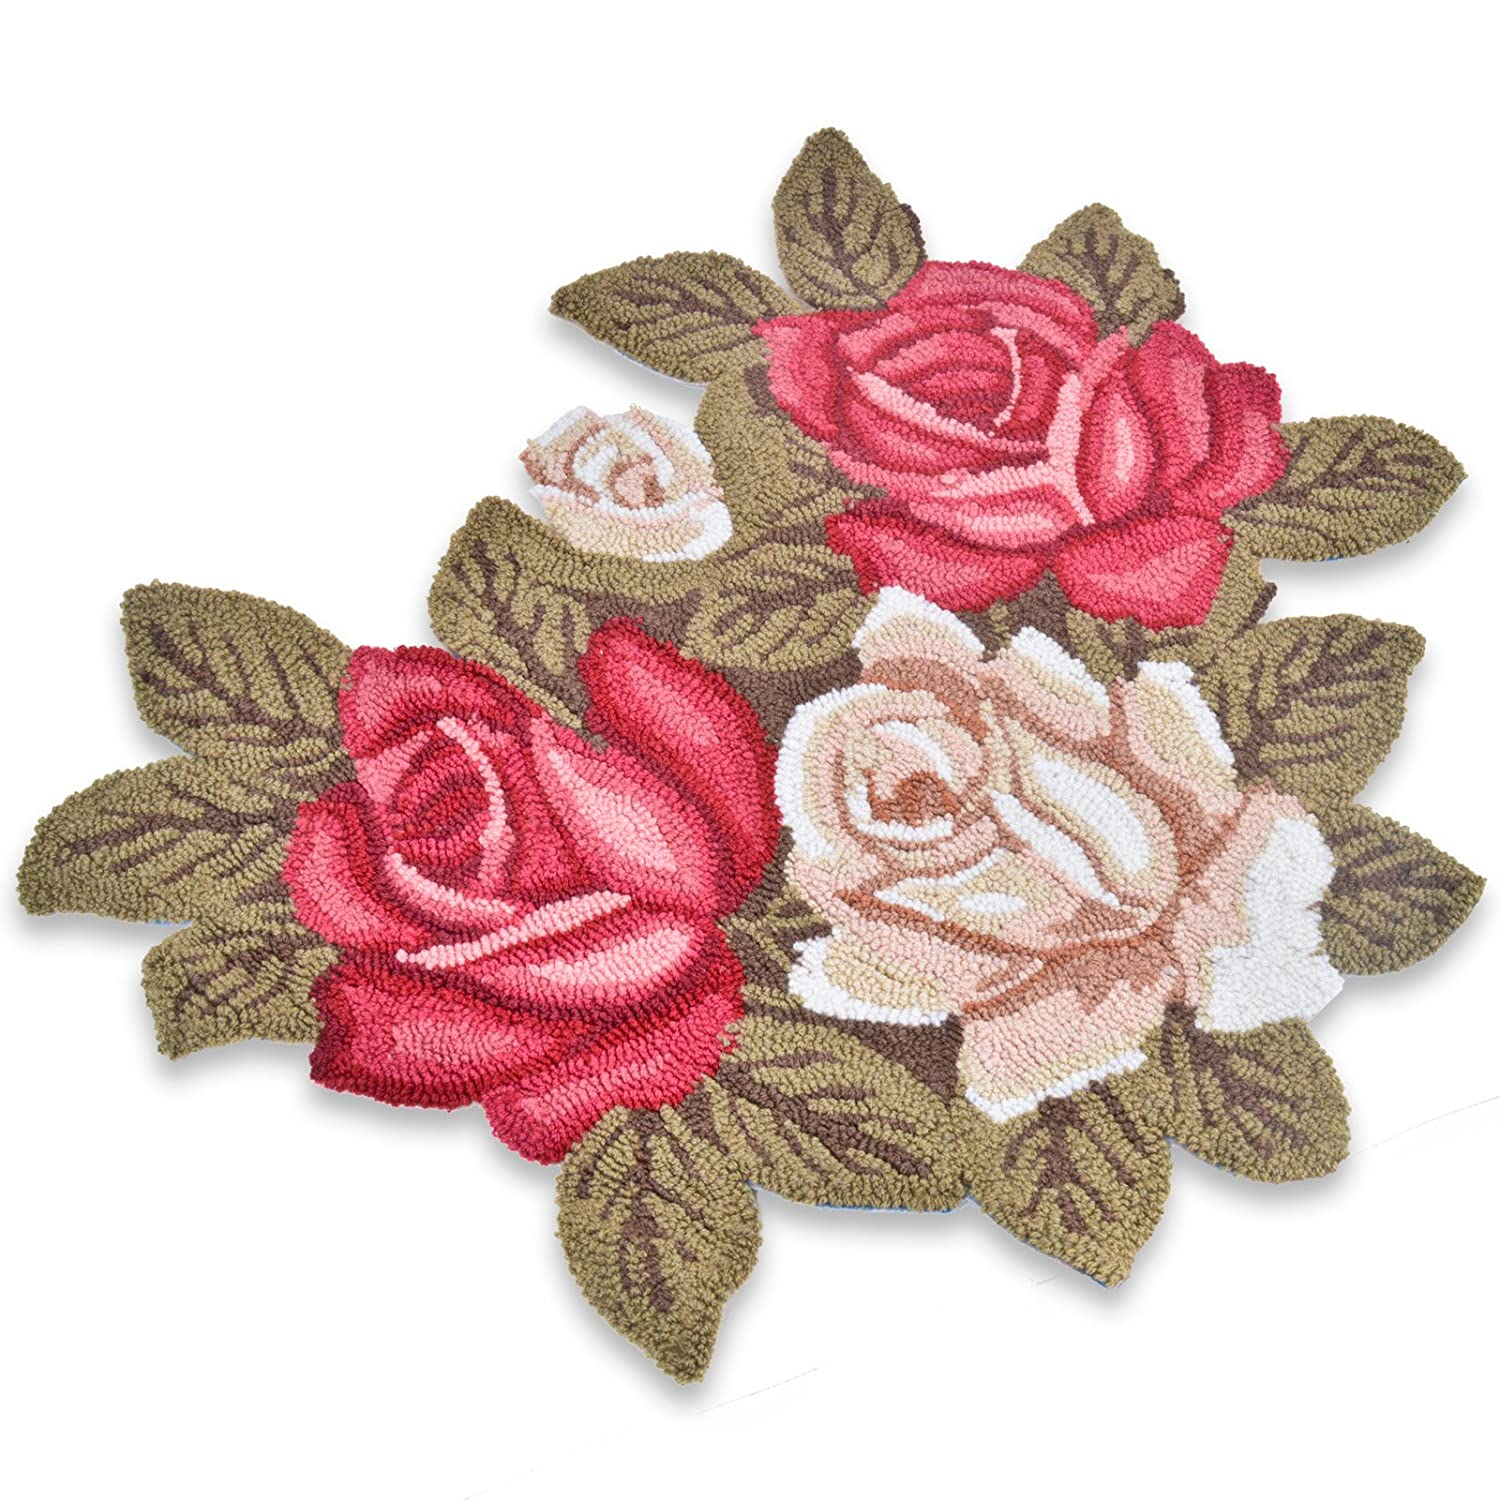 Rose Shaped Rug Charming Floral Hearth Mat With Pink Cream And